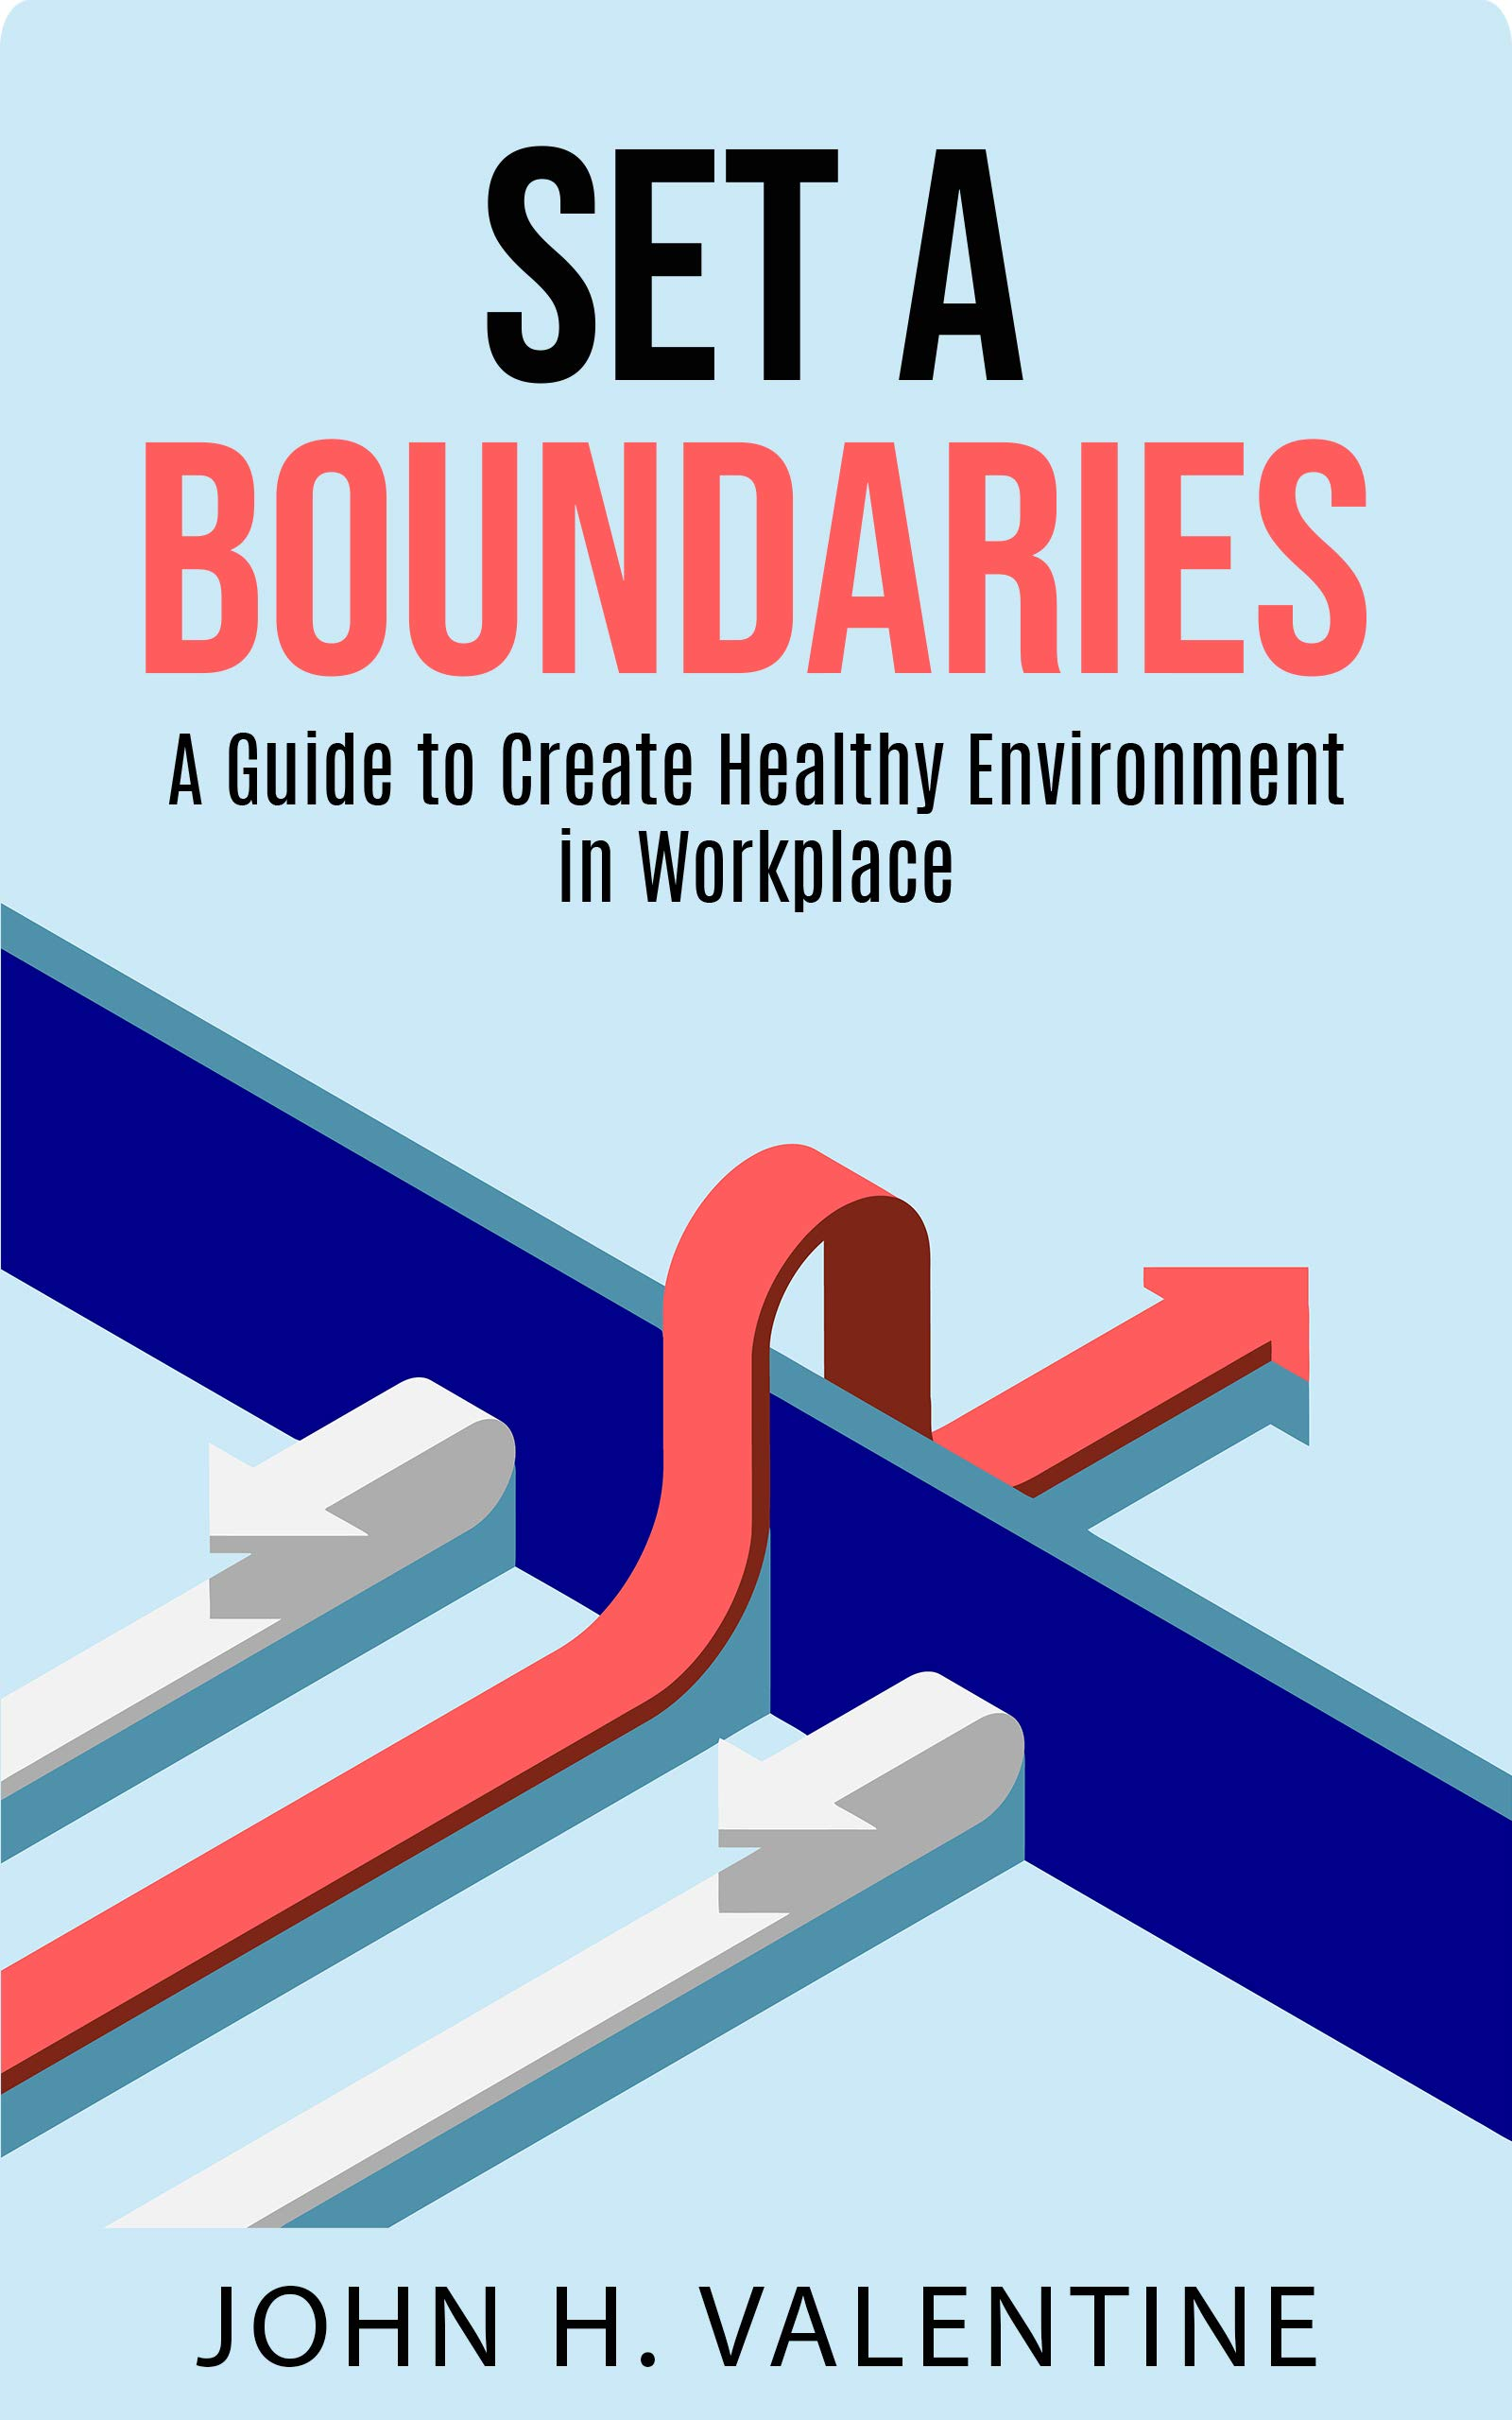 Set a Boundaries. : A Guide to Create Healthy Environment in Workplace.